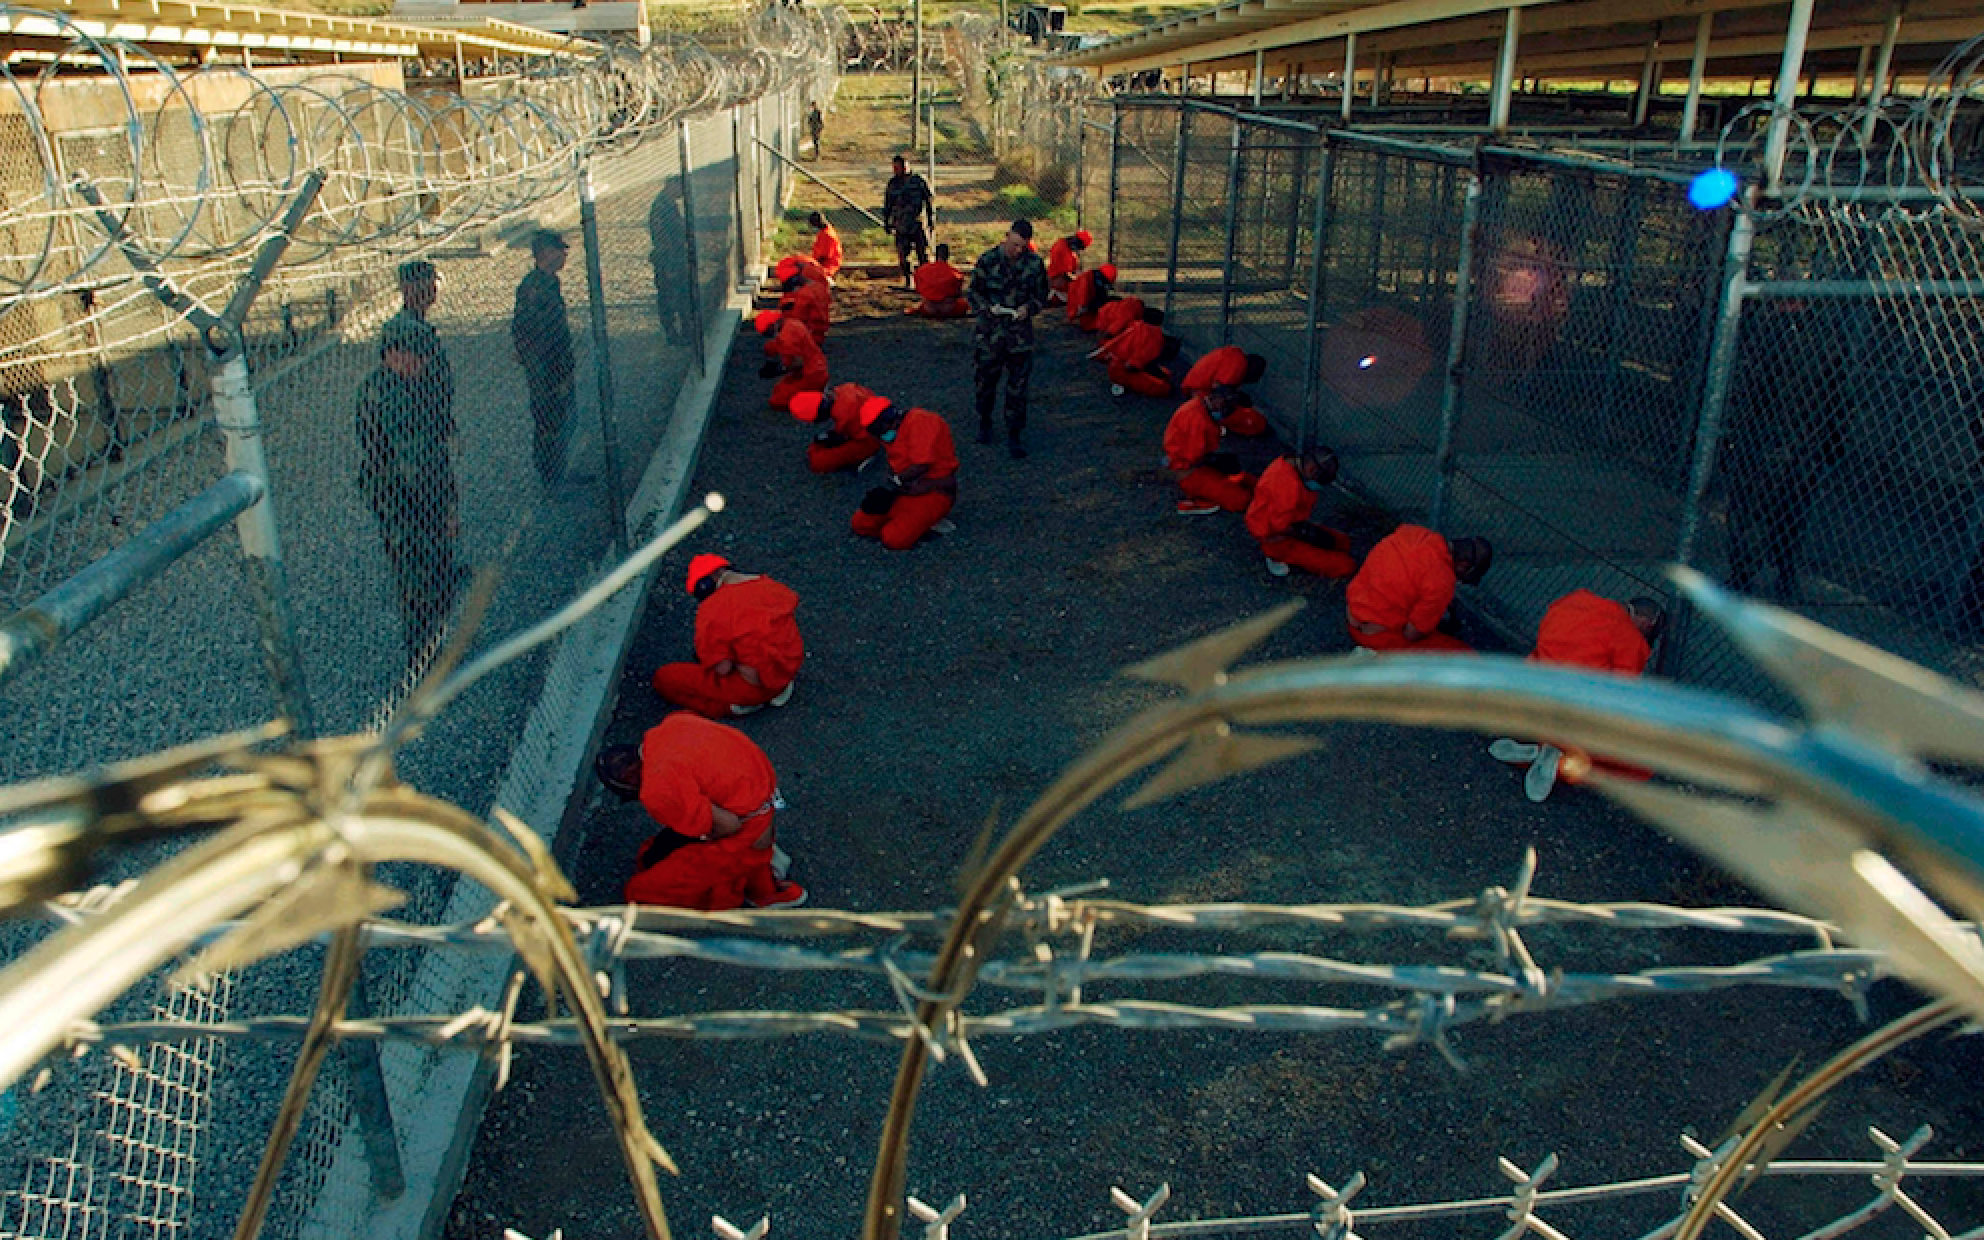 Detainees in orange jumpsuits sit in a holding area under the watchful eyes of Military Police at Camp X-Ray at Naval Base Guantanamo Bay, Cuba, during in-processing to the temporary detention facility on January 11, 2002. REUTERS/DoD/Shane T. McCoy